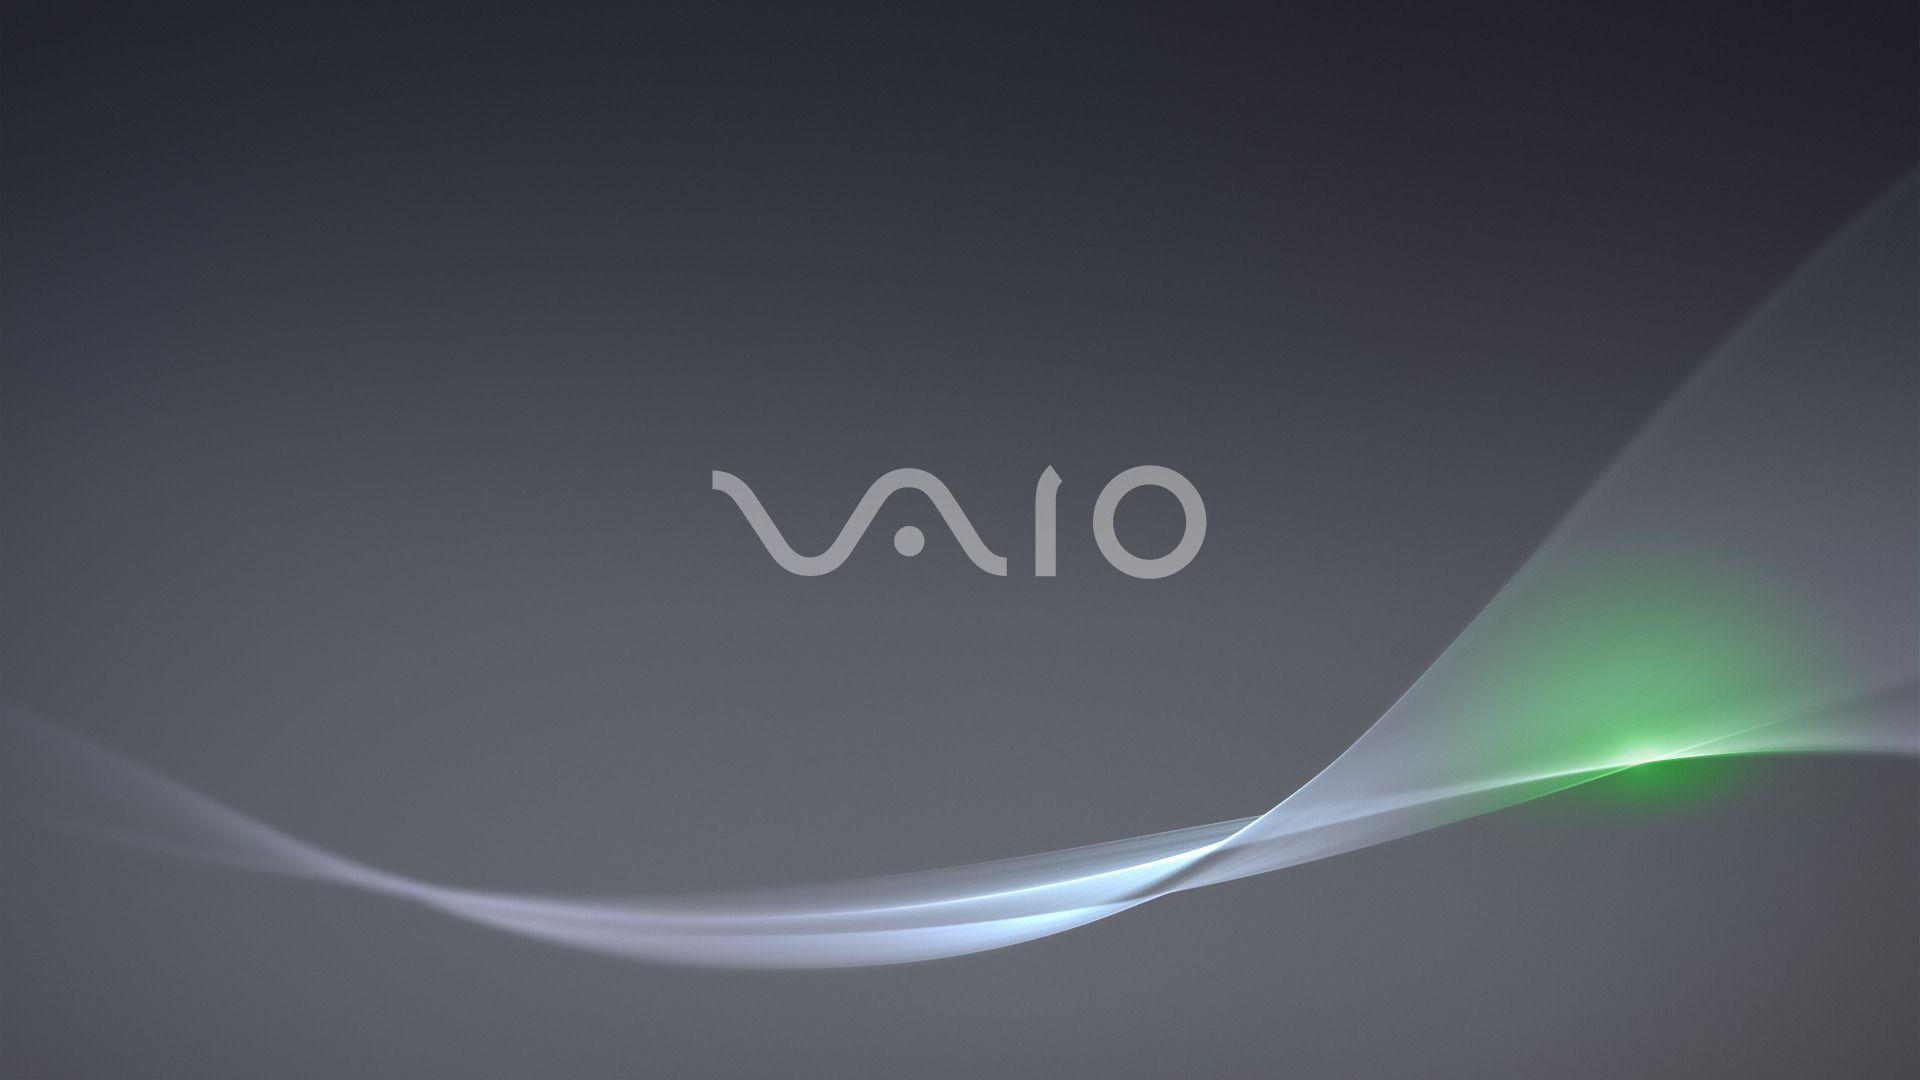 Sony Vaio Wallpapers HD